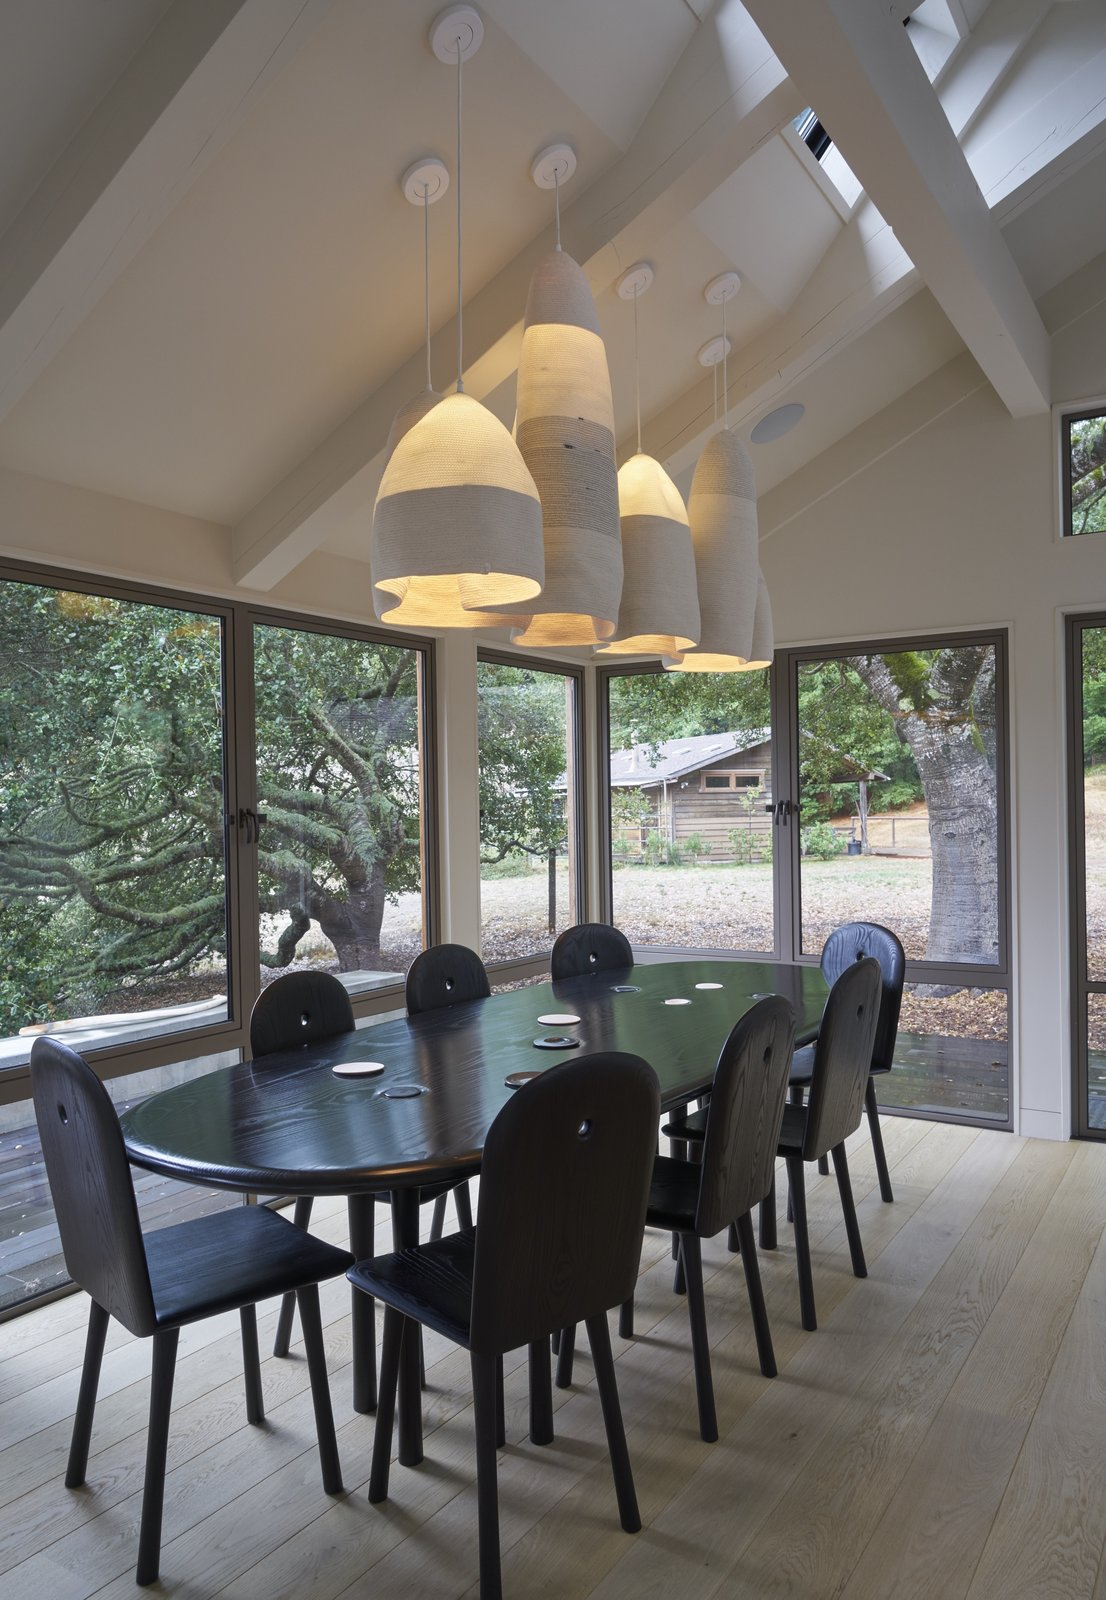 """A pendant by Doug Johnston, represented by Patrick Parrish, hangs over a custom dining table by Christopher Kurtz. """"Working with [Kurtz] was a privilege and beautiful experience,"""" says the homeowner. """"He sent us a video of a stream with eddies in it, and I thought that was so appropriate: you look out at the meadow and the forest, and the lights are kind of like mountains."""" The oval shape encourages everyone sitting around it to engage in one conversation.  Beetlebung"""